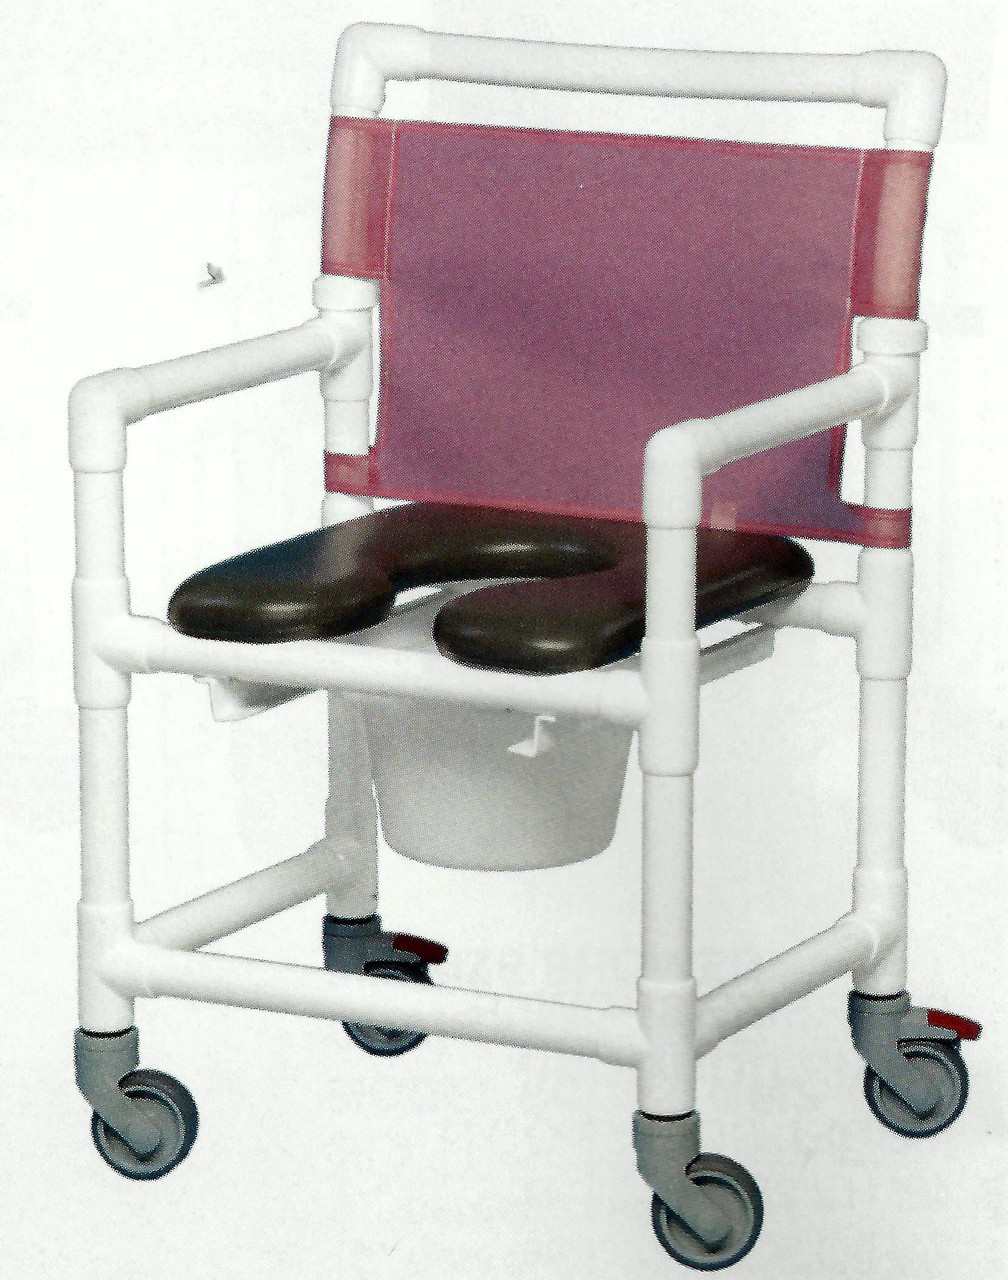 Mid Size Open Front Soft Seat Shower Chair - CareProdx